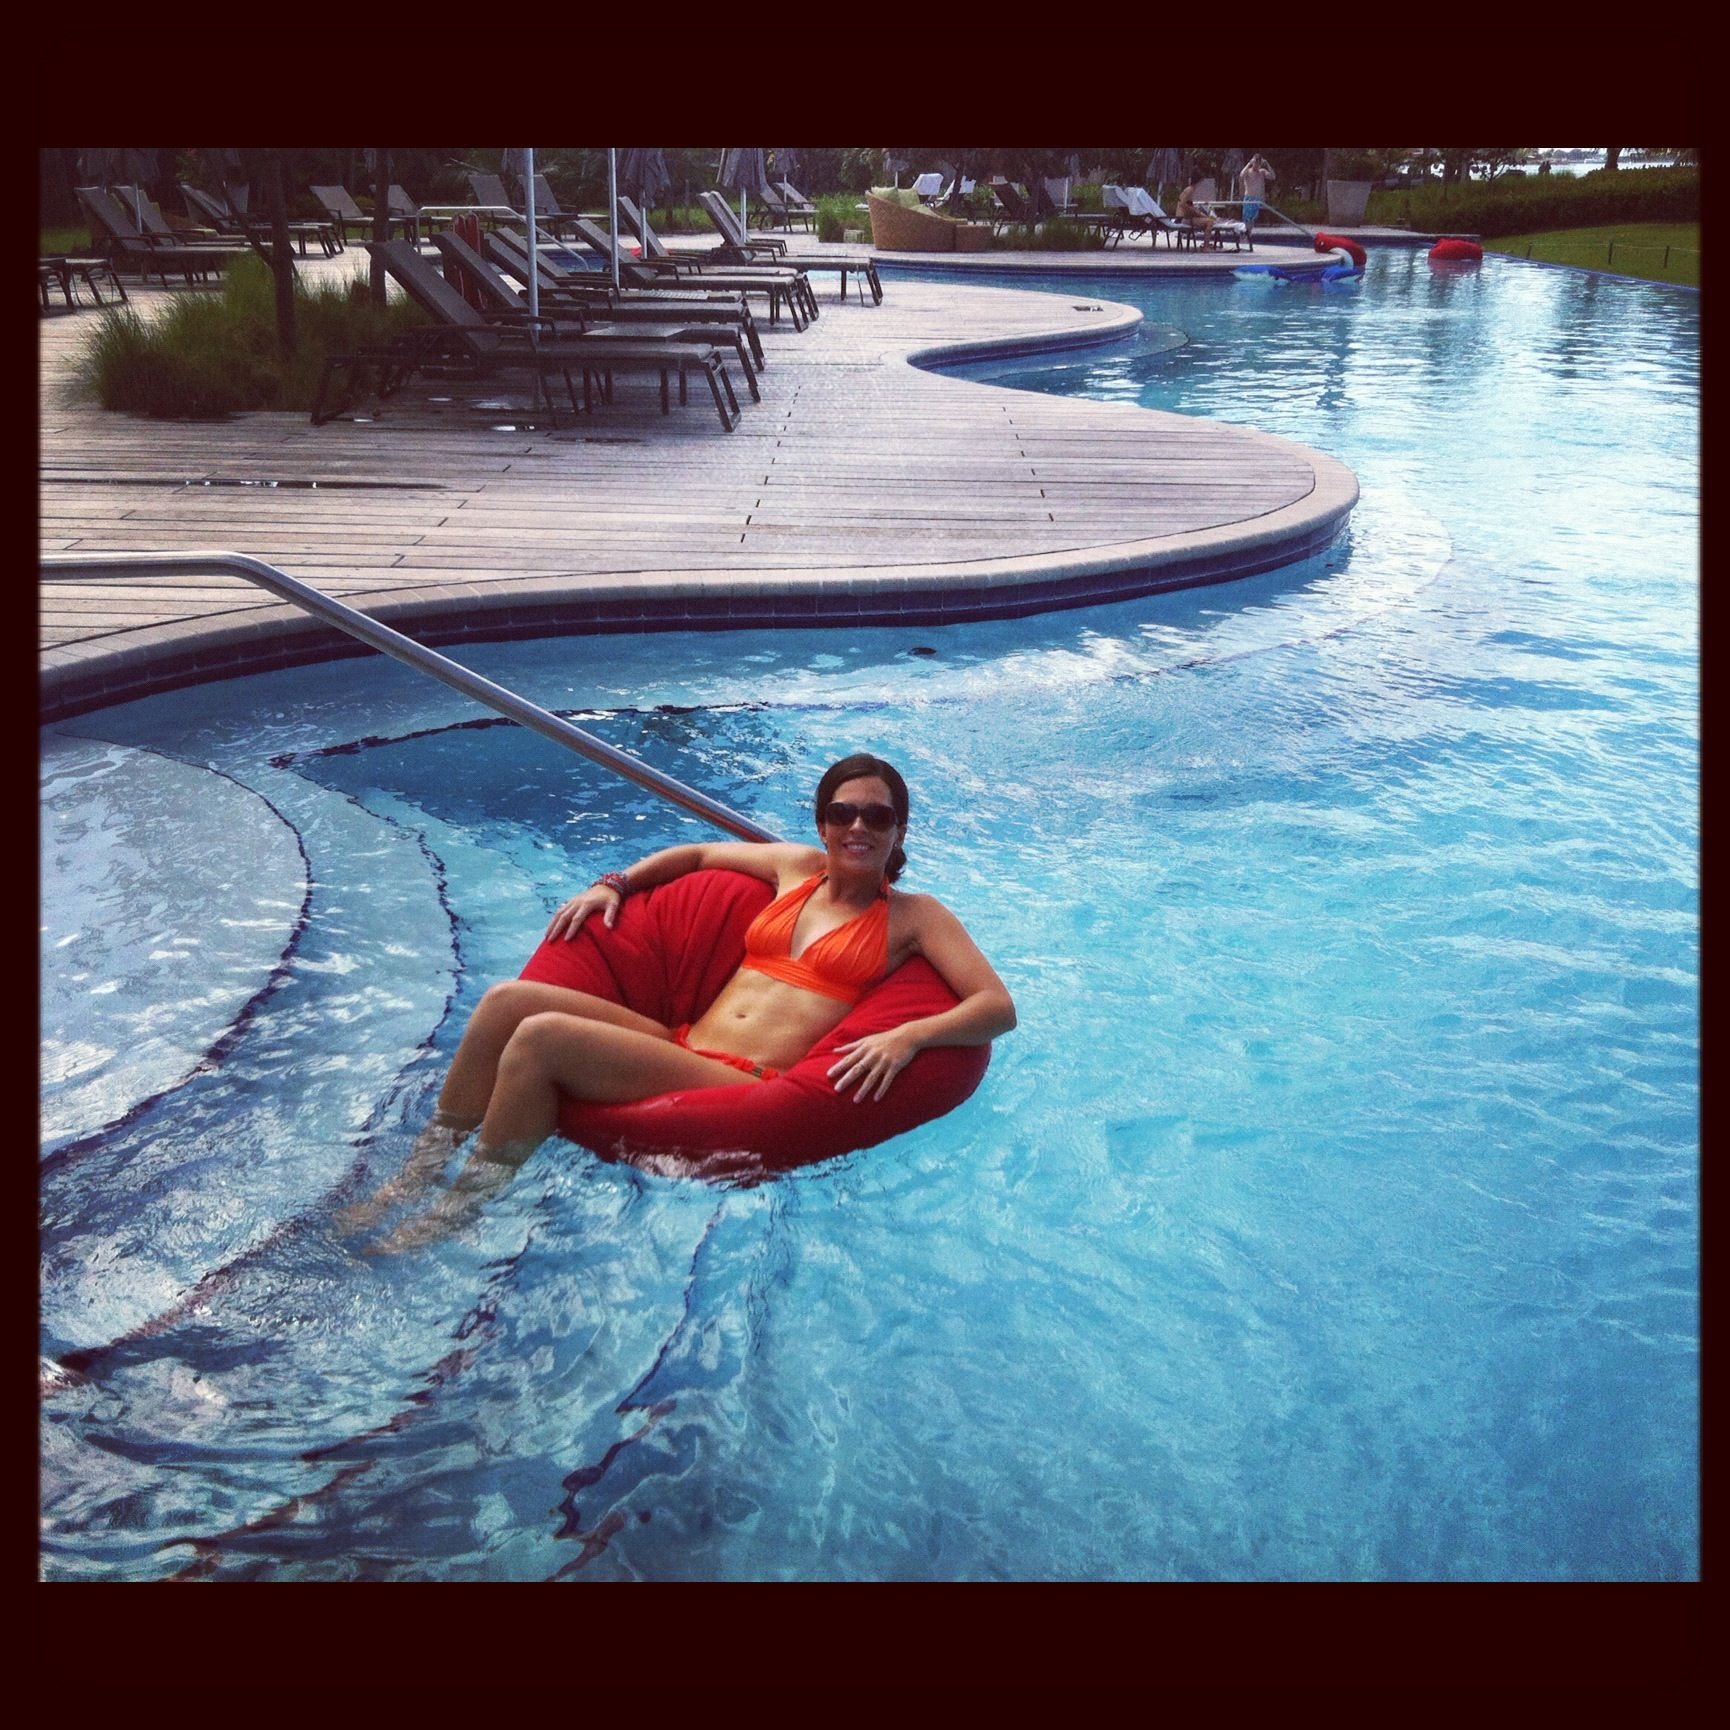 Take A Float Around Our Reflection Pool In A Bean Bag Pool Chair.